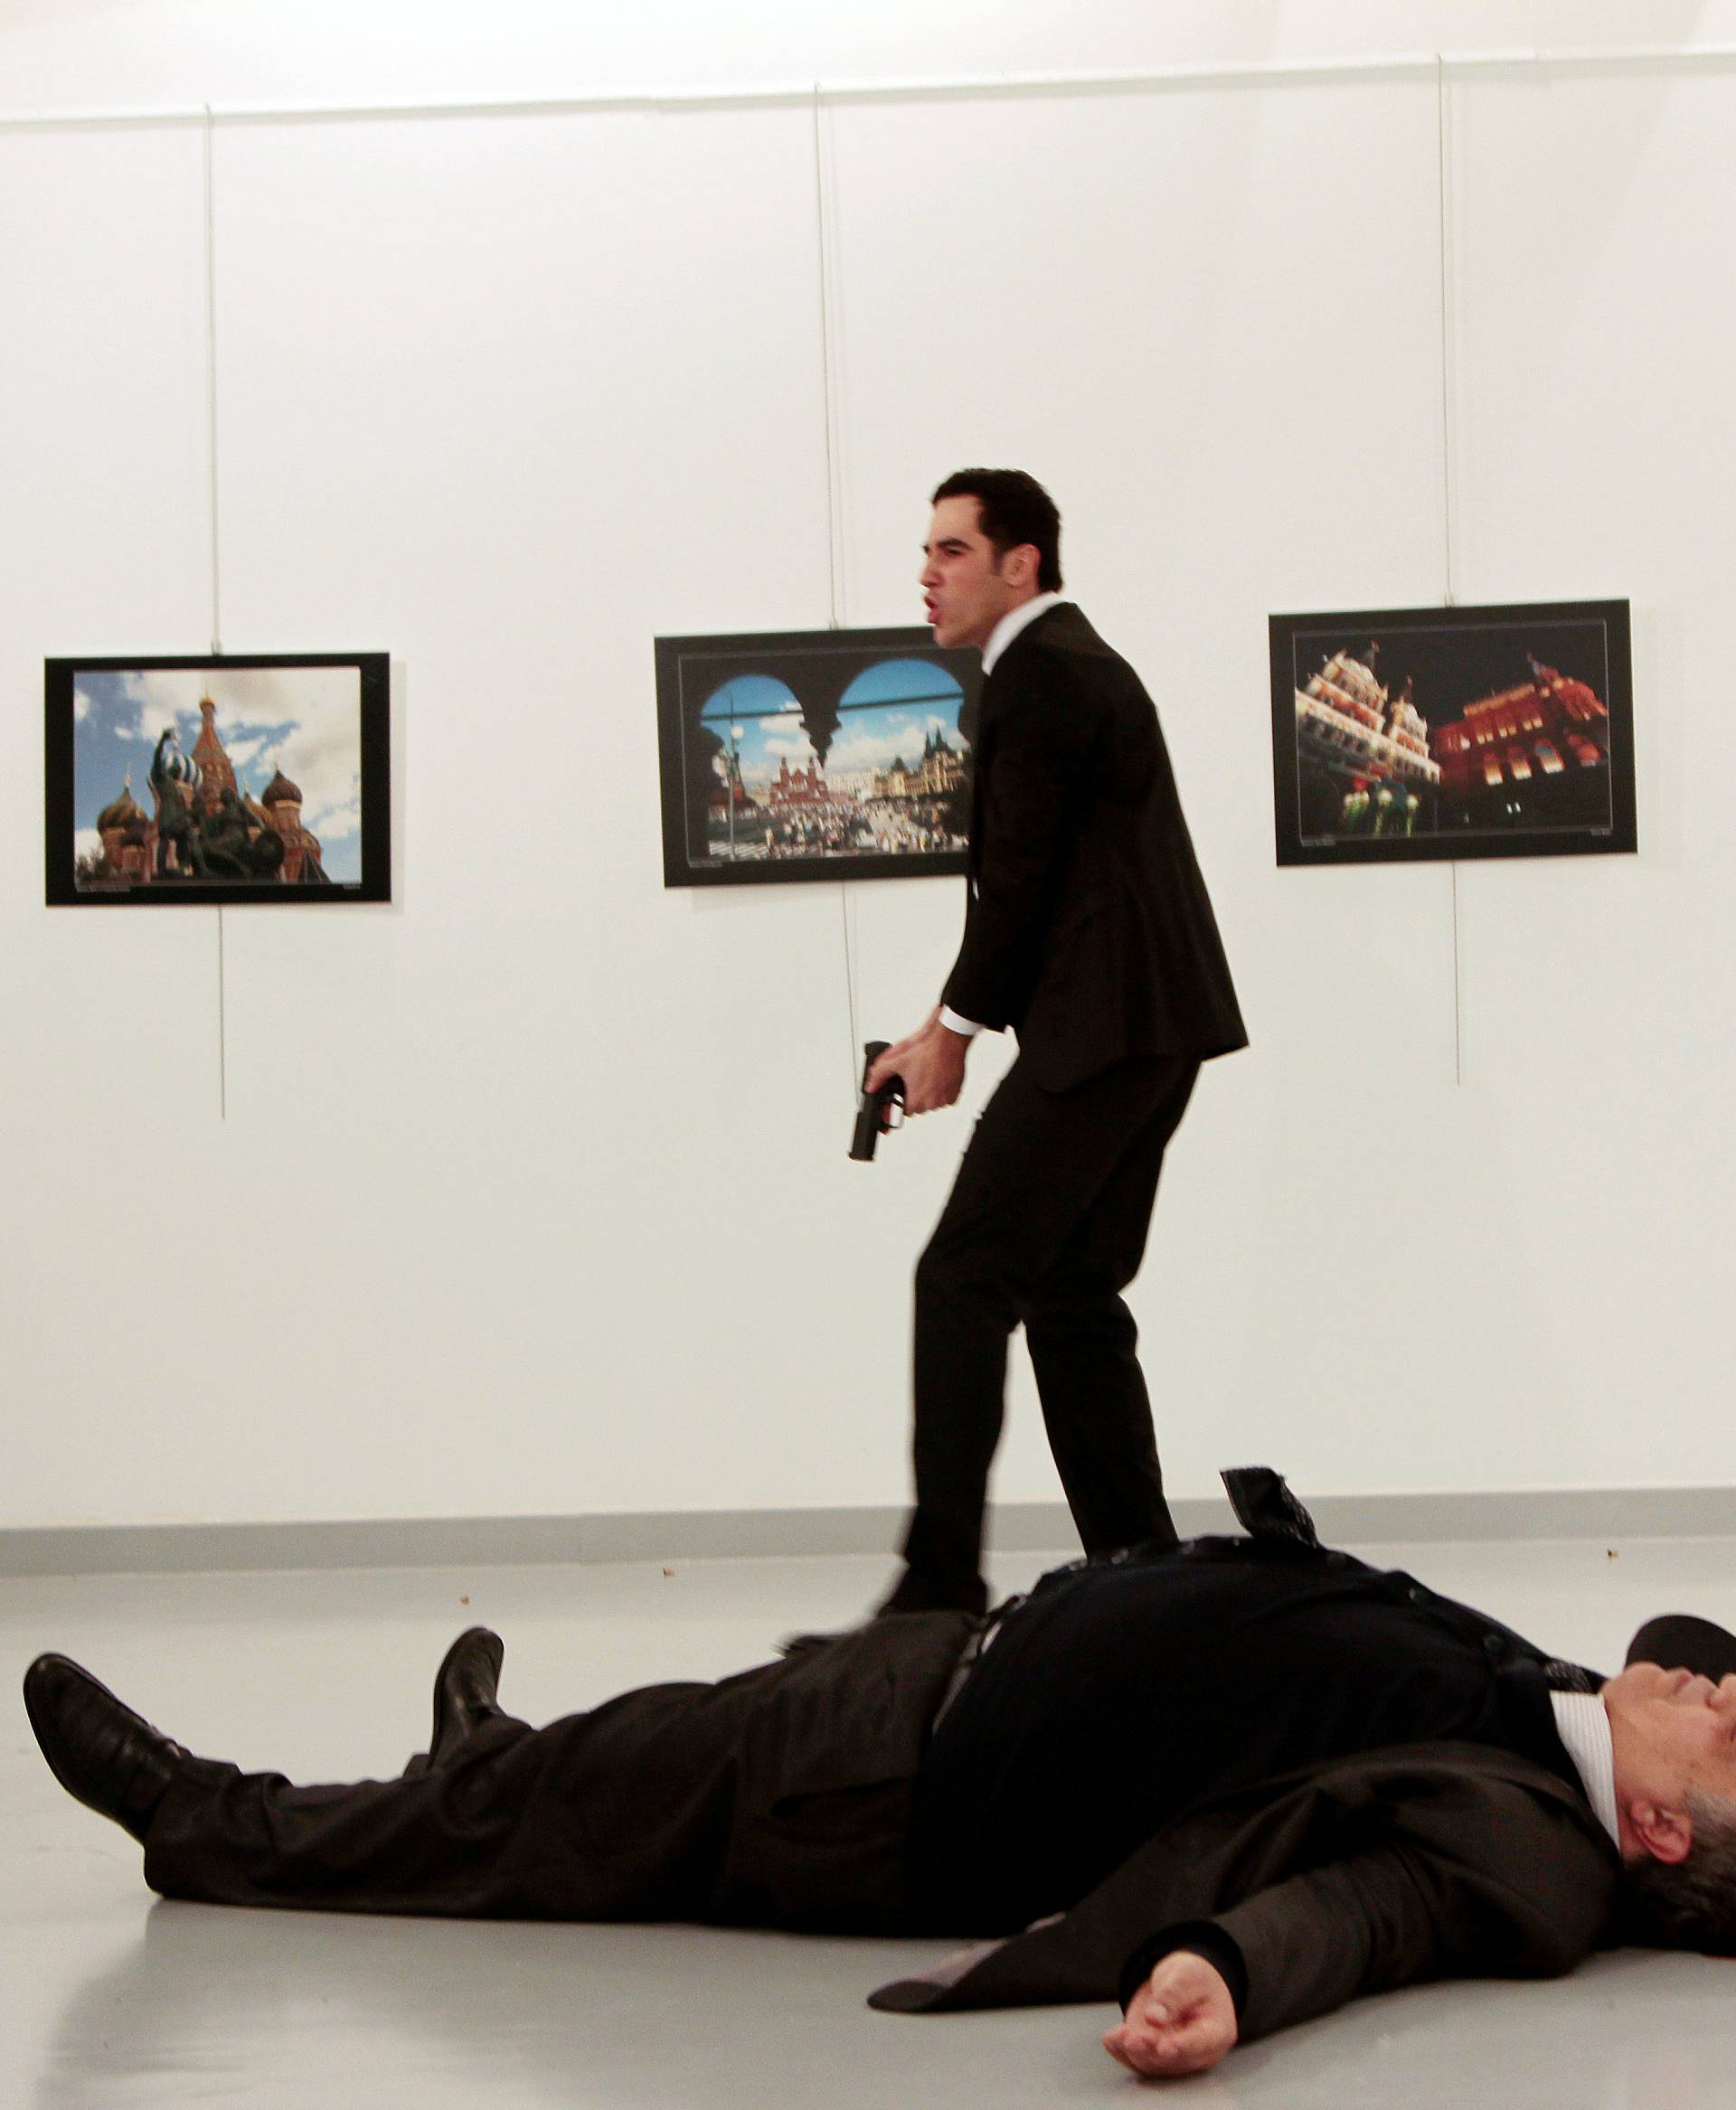 Russian Ambassador to Turkey Andrei Karlov lies on the ground after he was shot by Mevlut Mert Altintas at an art gallery in Ankara